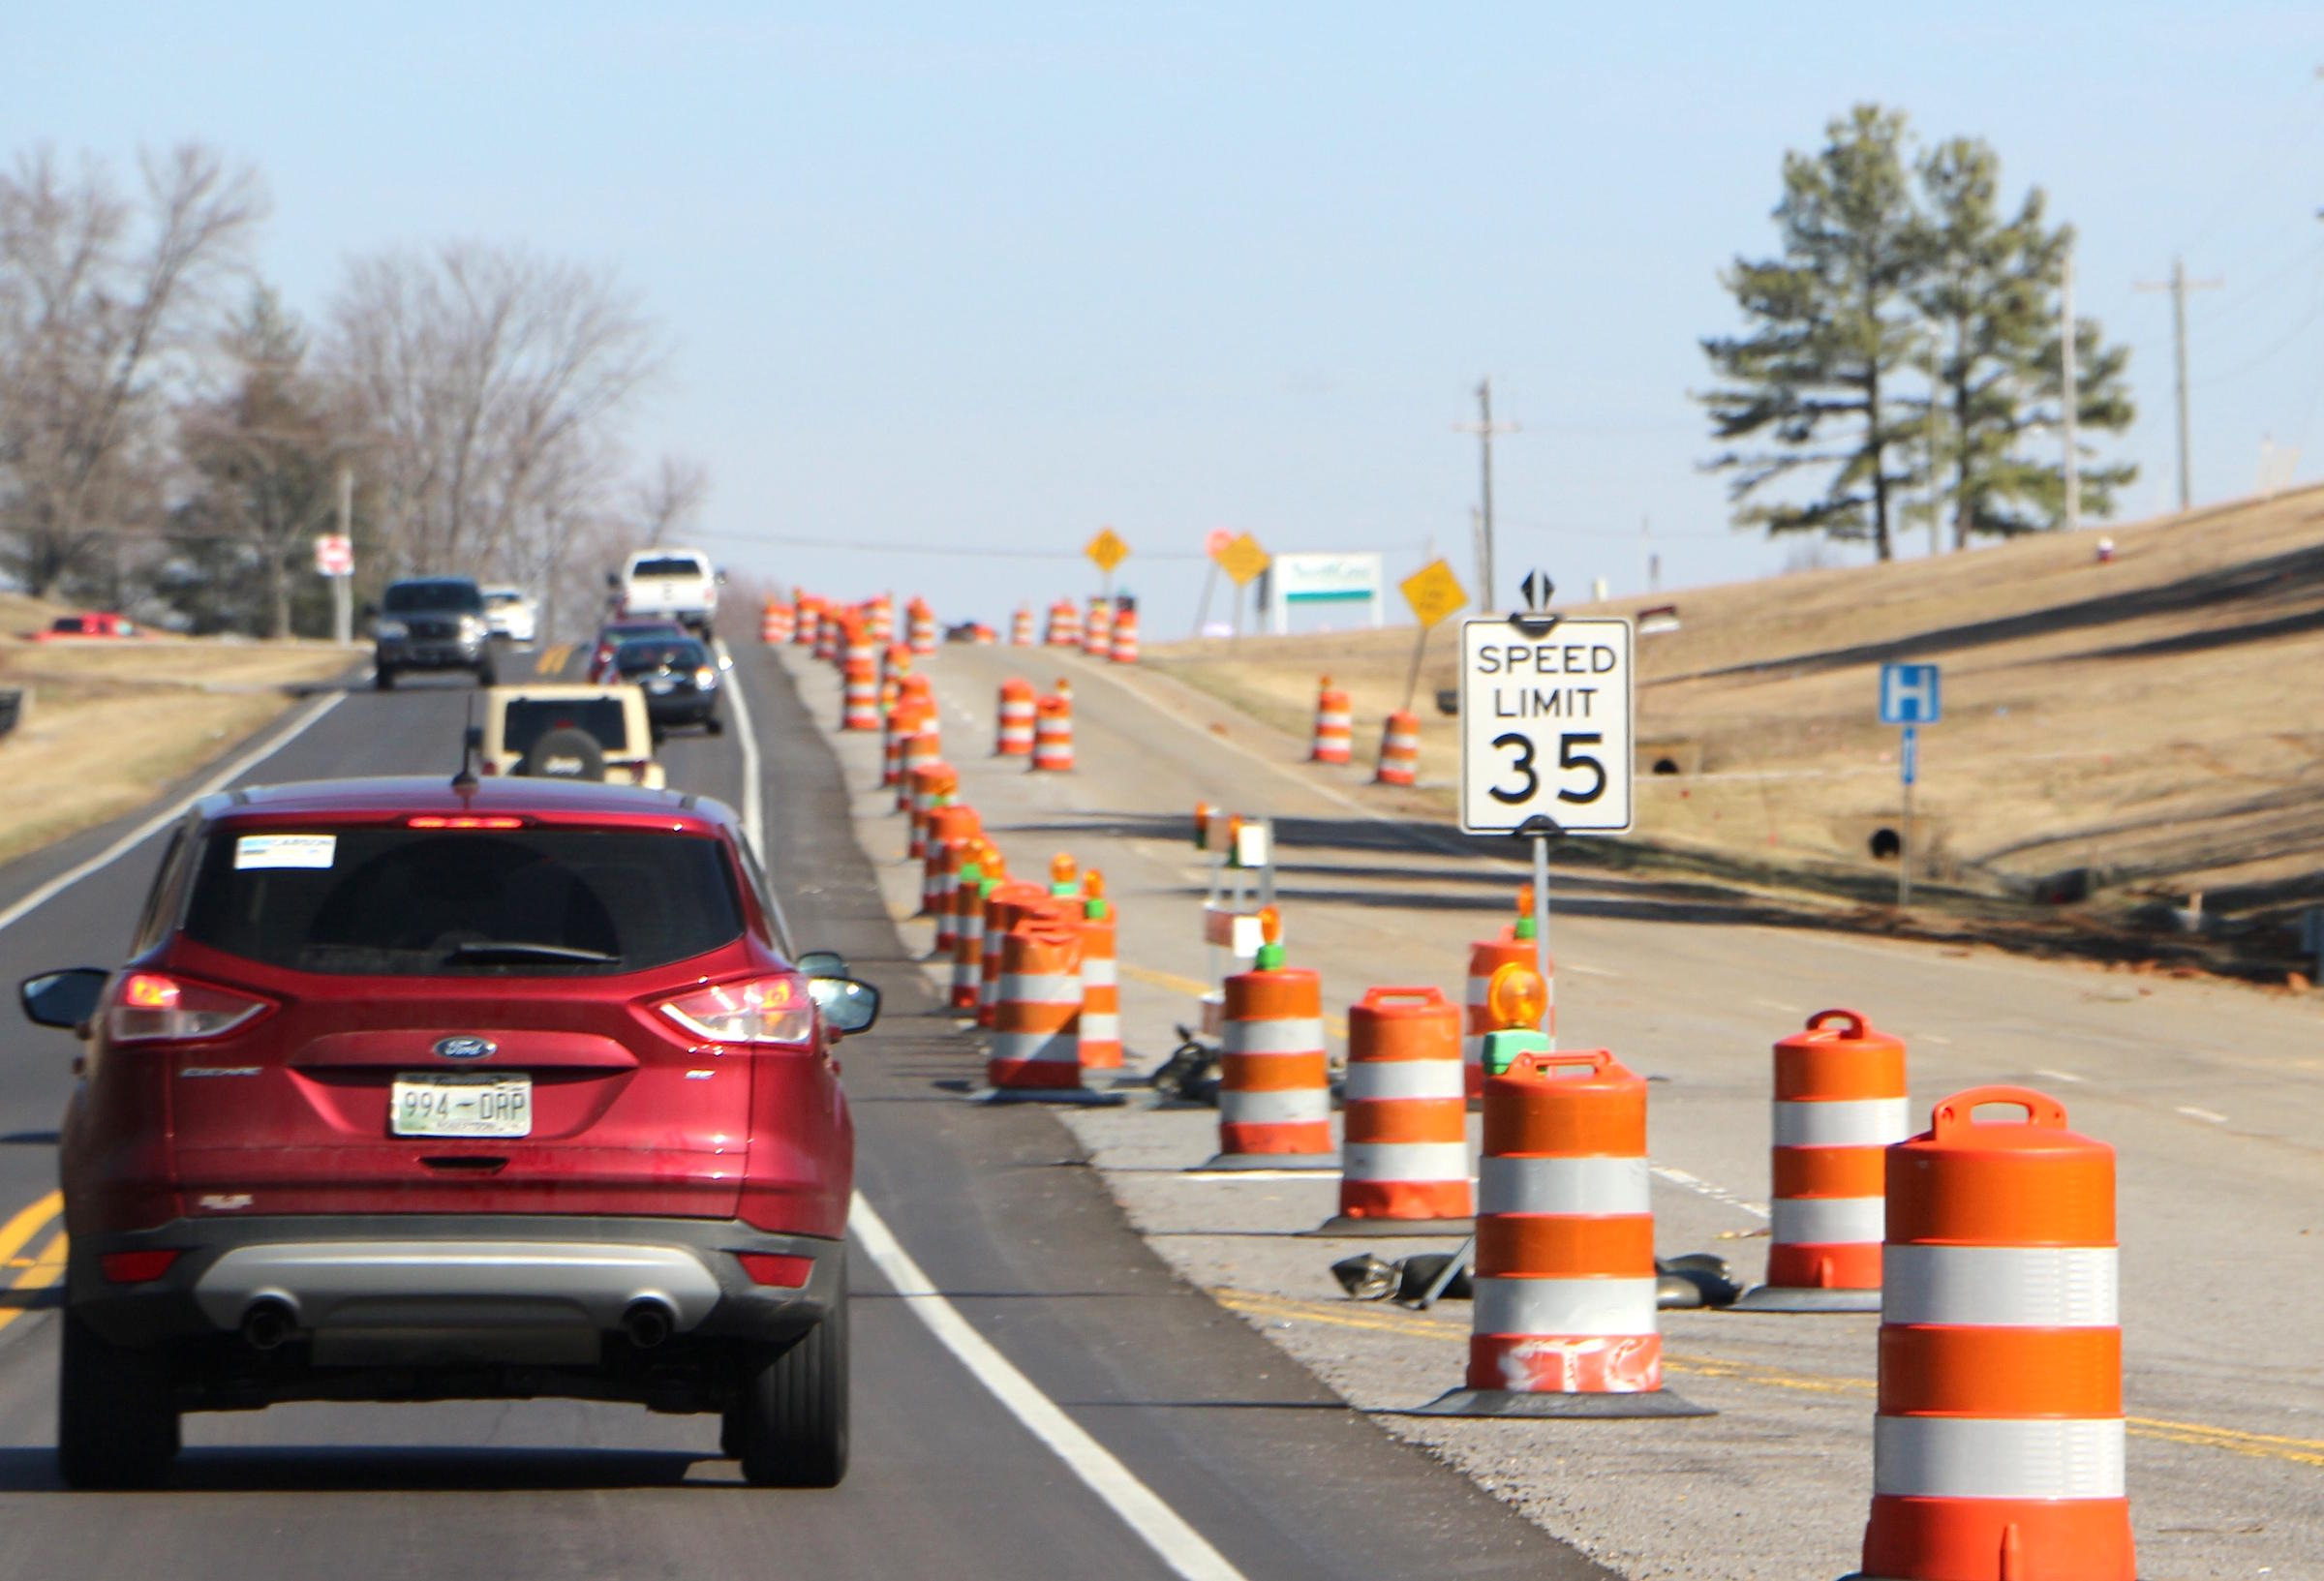 Tennessee robertson county springfield - In Springfield U S 431 Is Being Widened After More Than A Decade Of Local Agitation Some Of The Funding Comes Through The Regional Mpo Plan